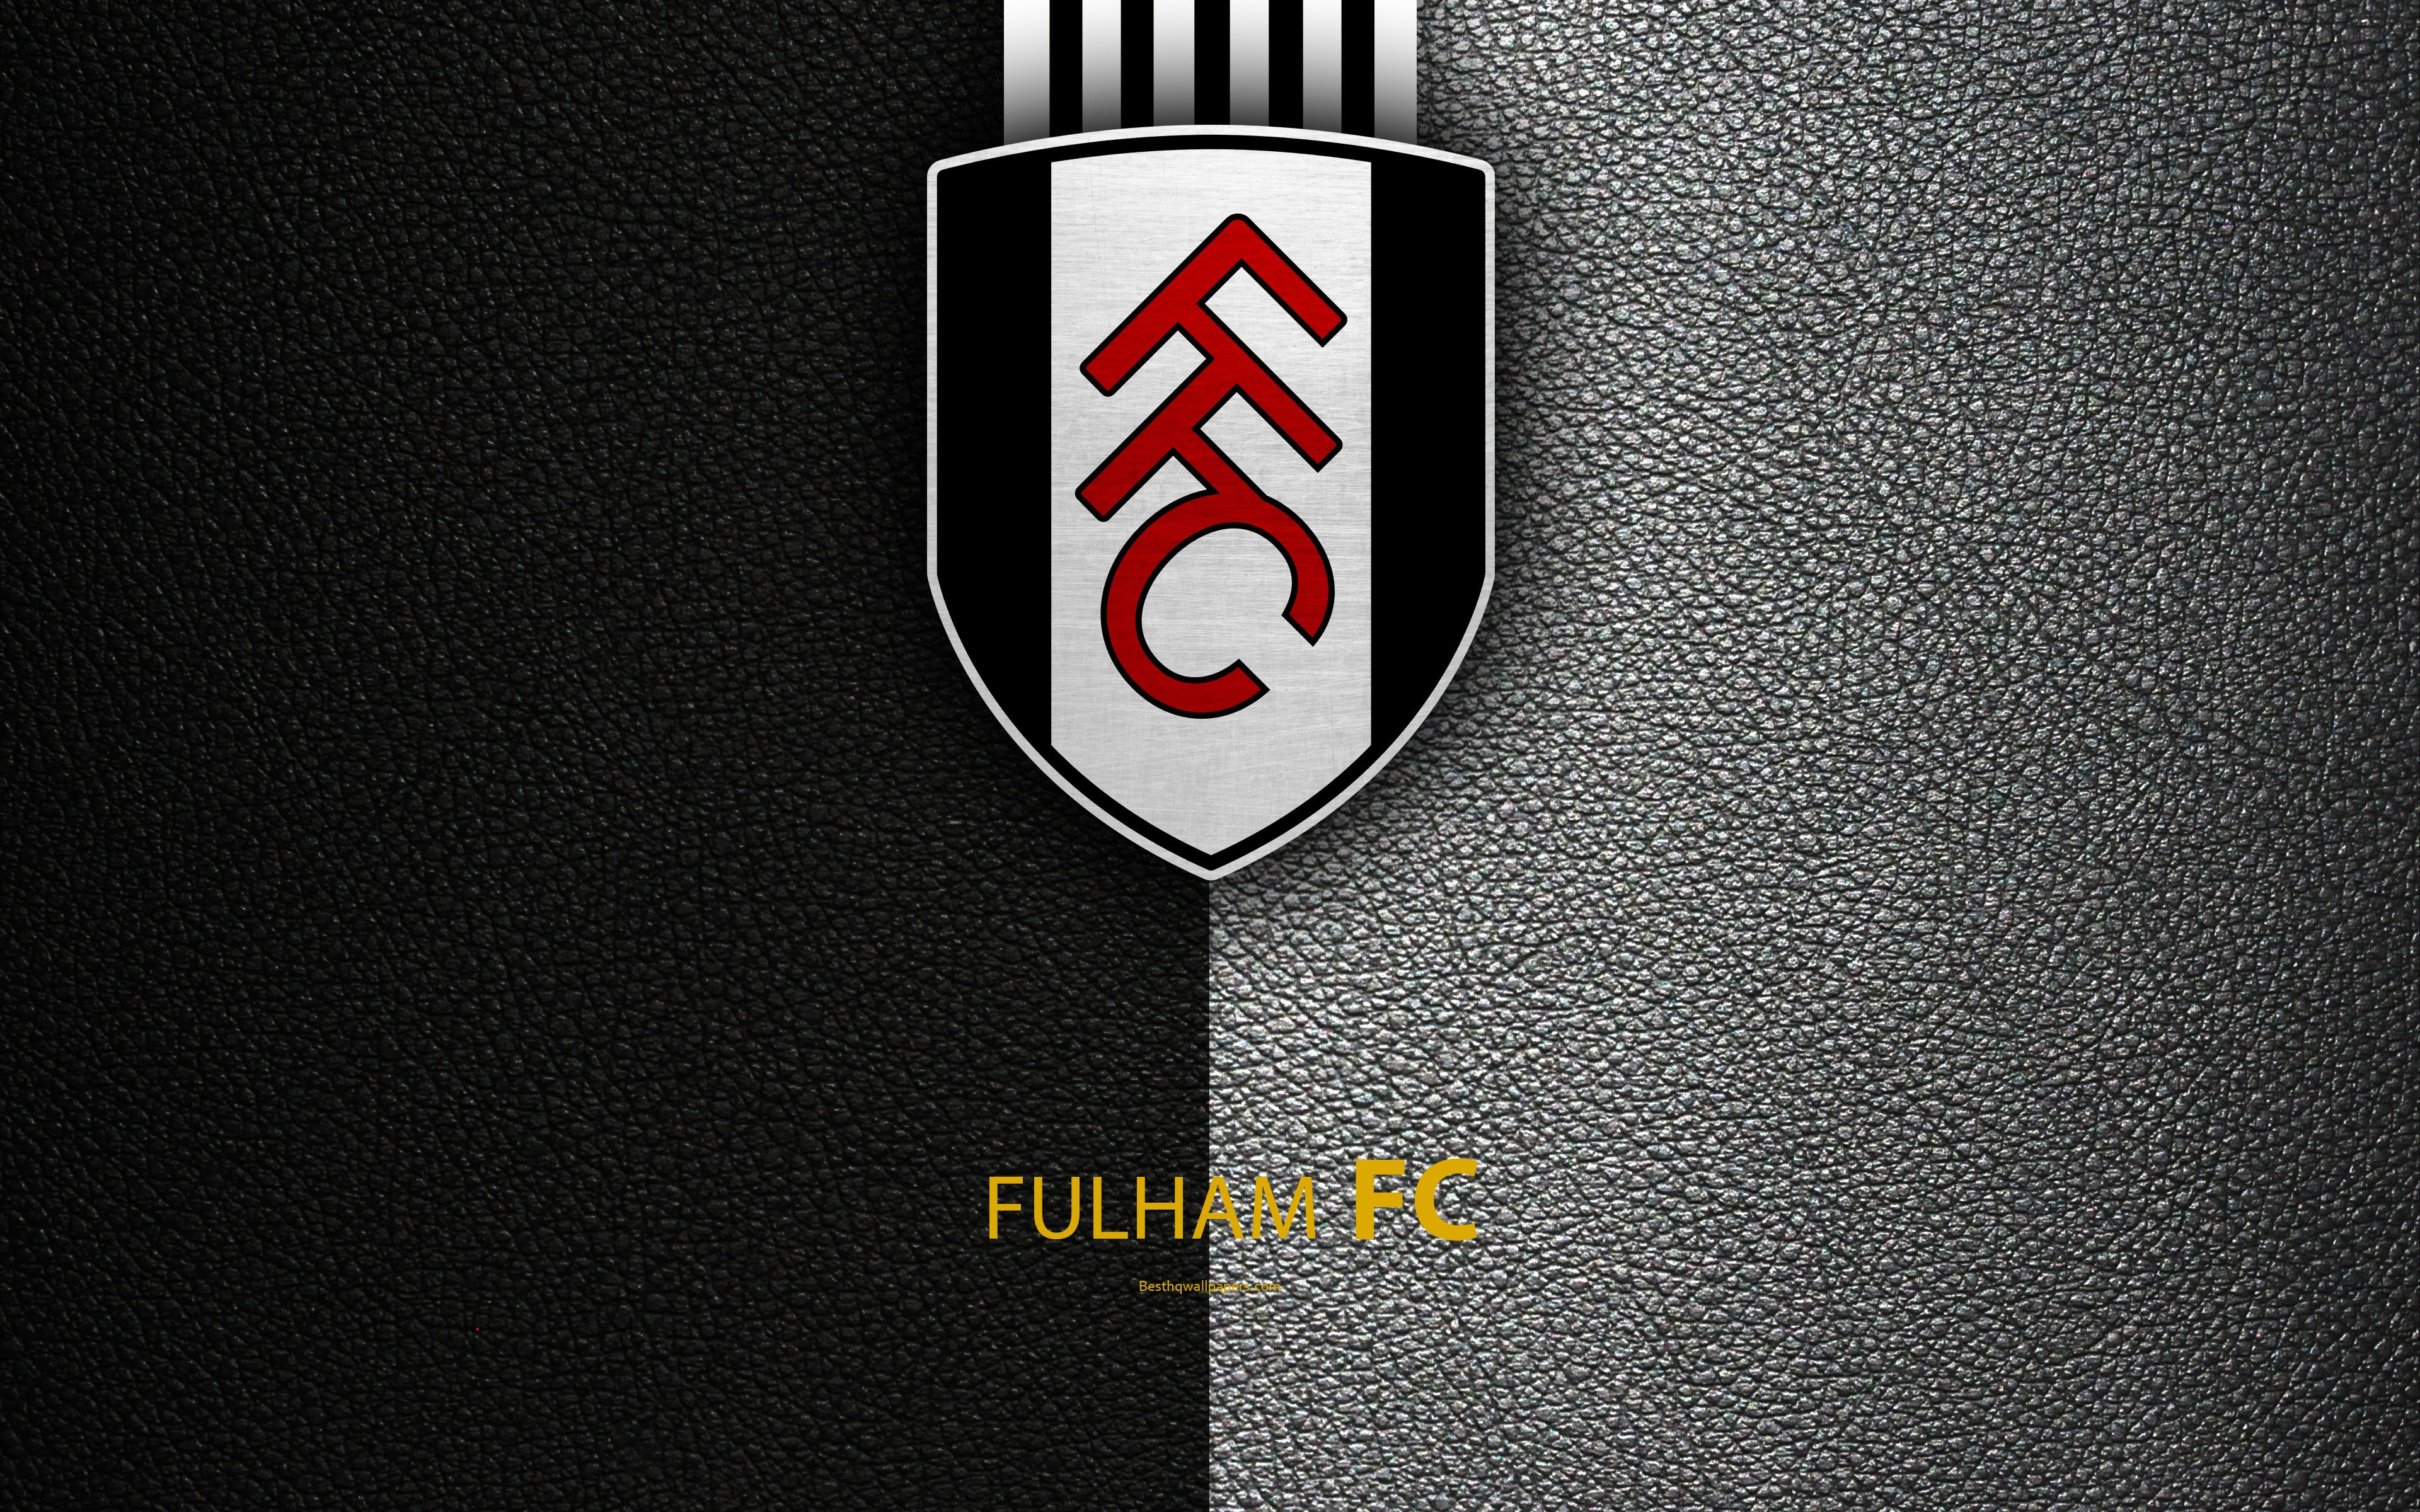 Fulham F.C. Wallpapers